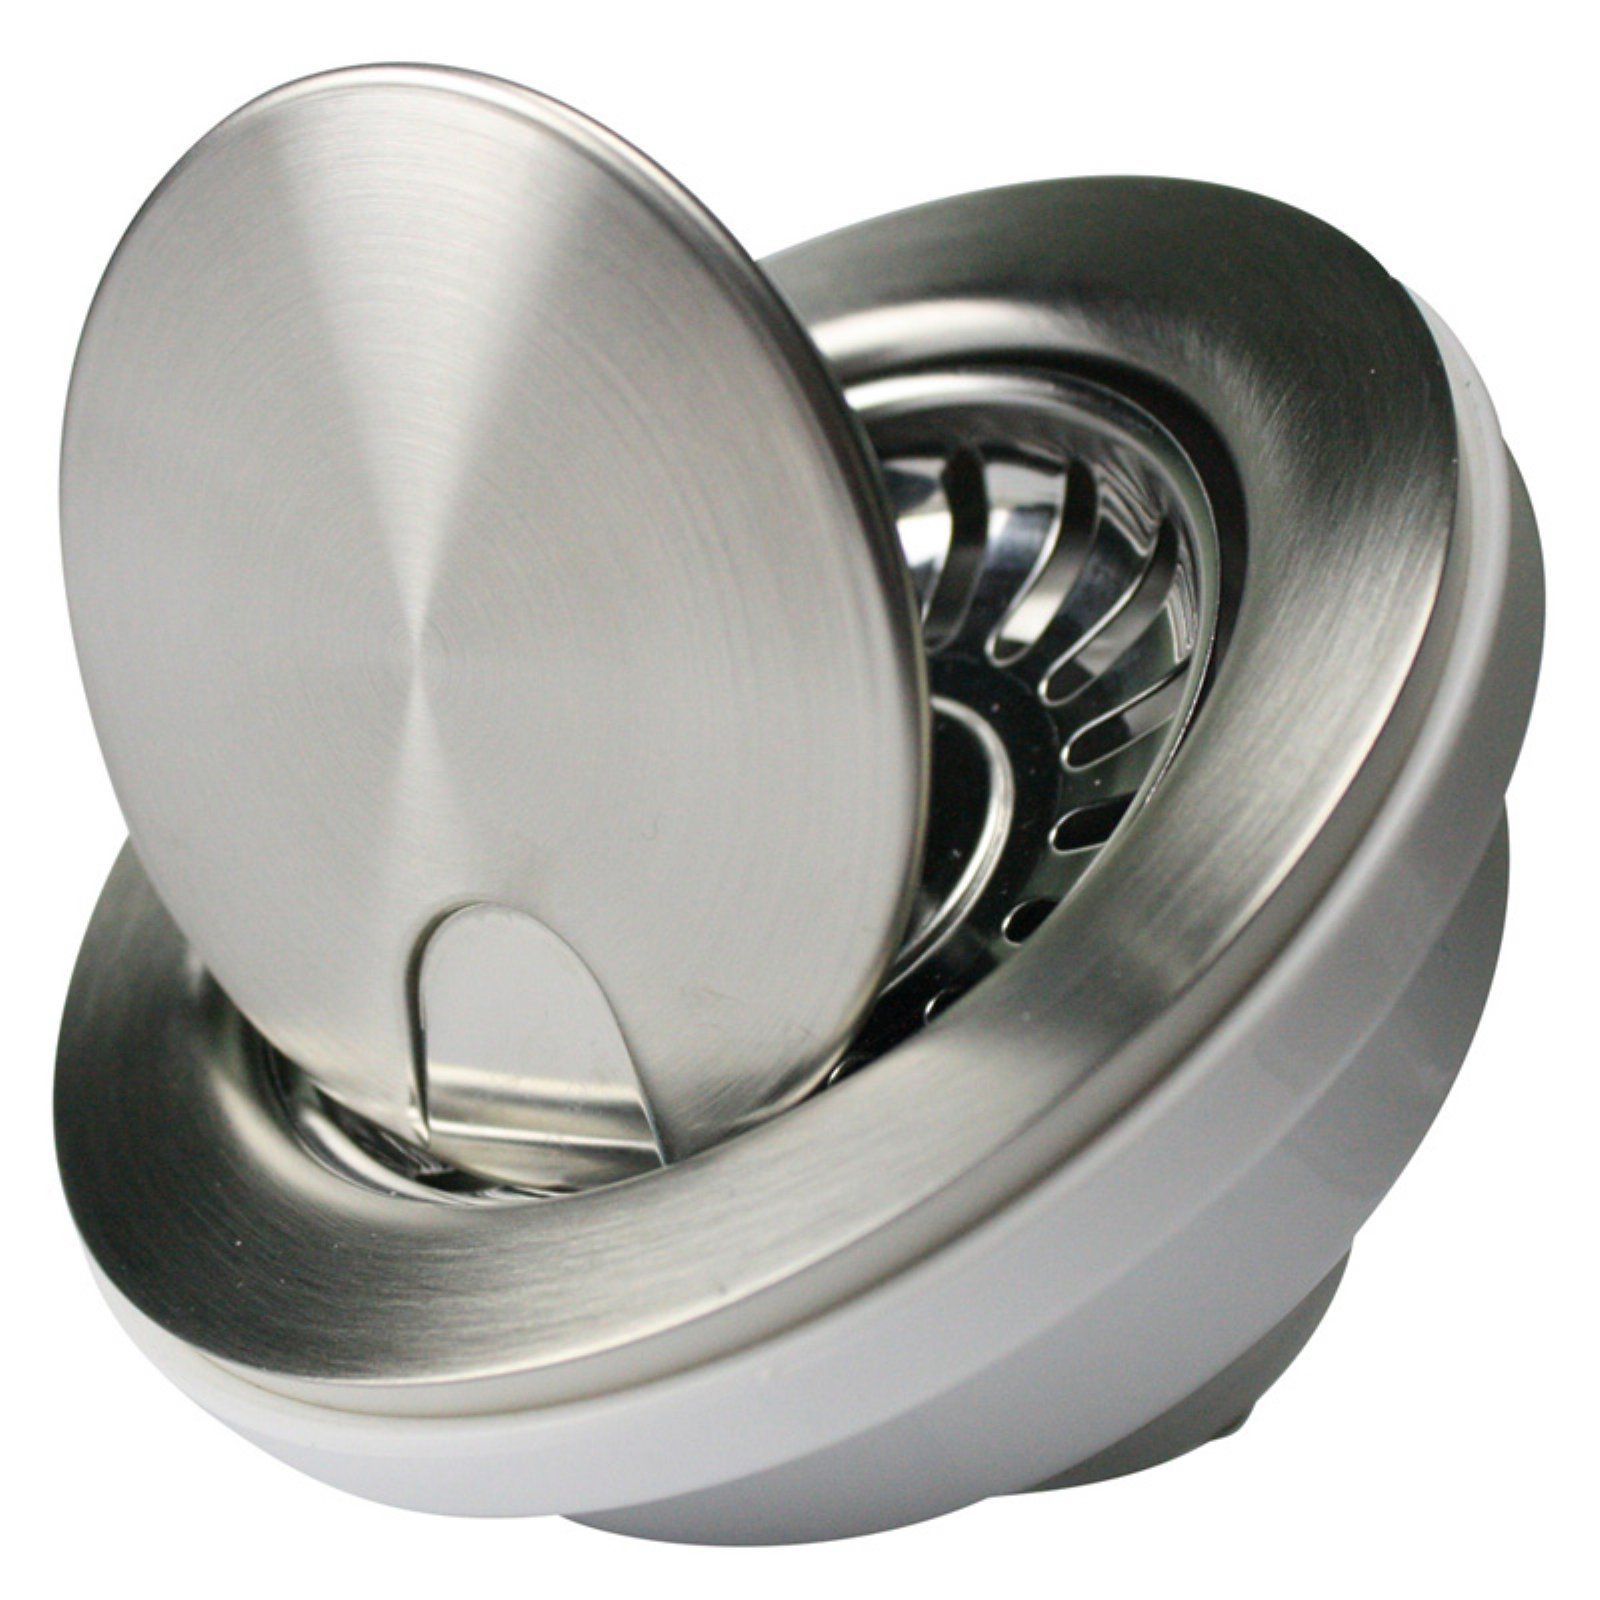 Nantucket Sinks NS35LCC Flip Top Crumb Cup Kitchen Drain